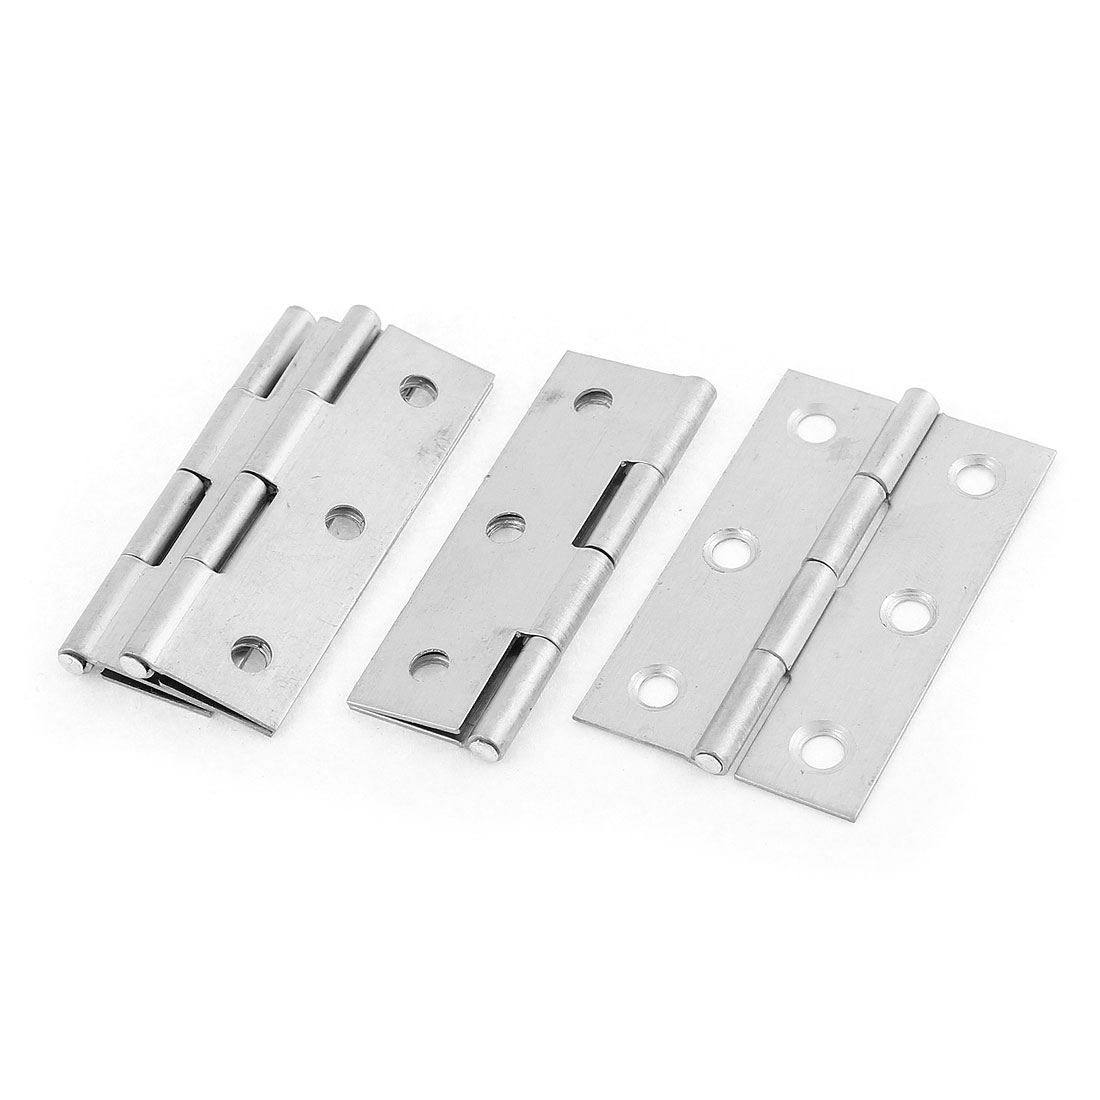 4 Pcs 55mmx34mm Stainless Steel Foldable Closet Cabinet Door Butt Hinge